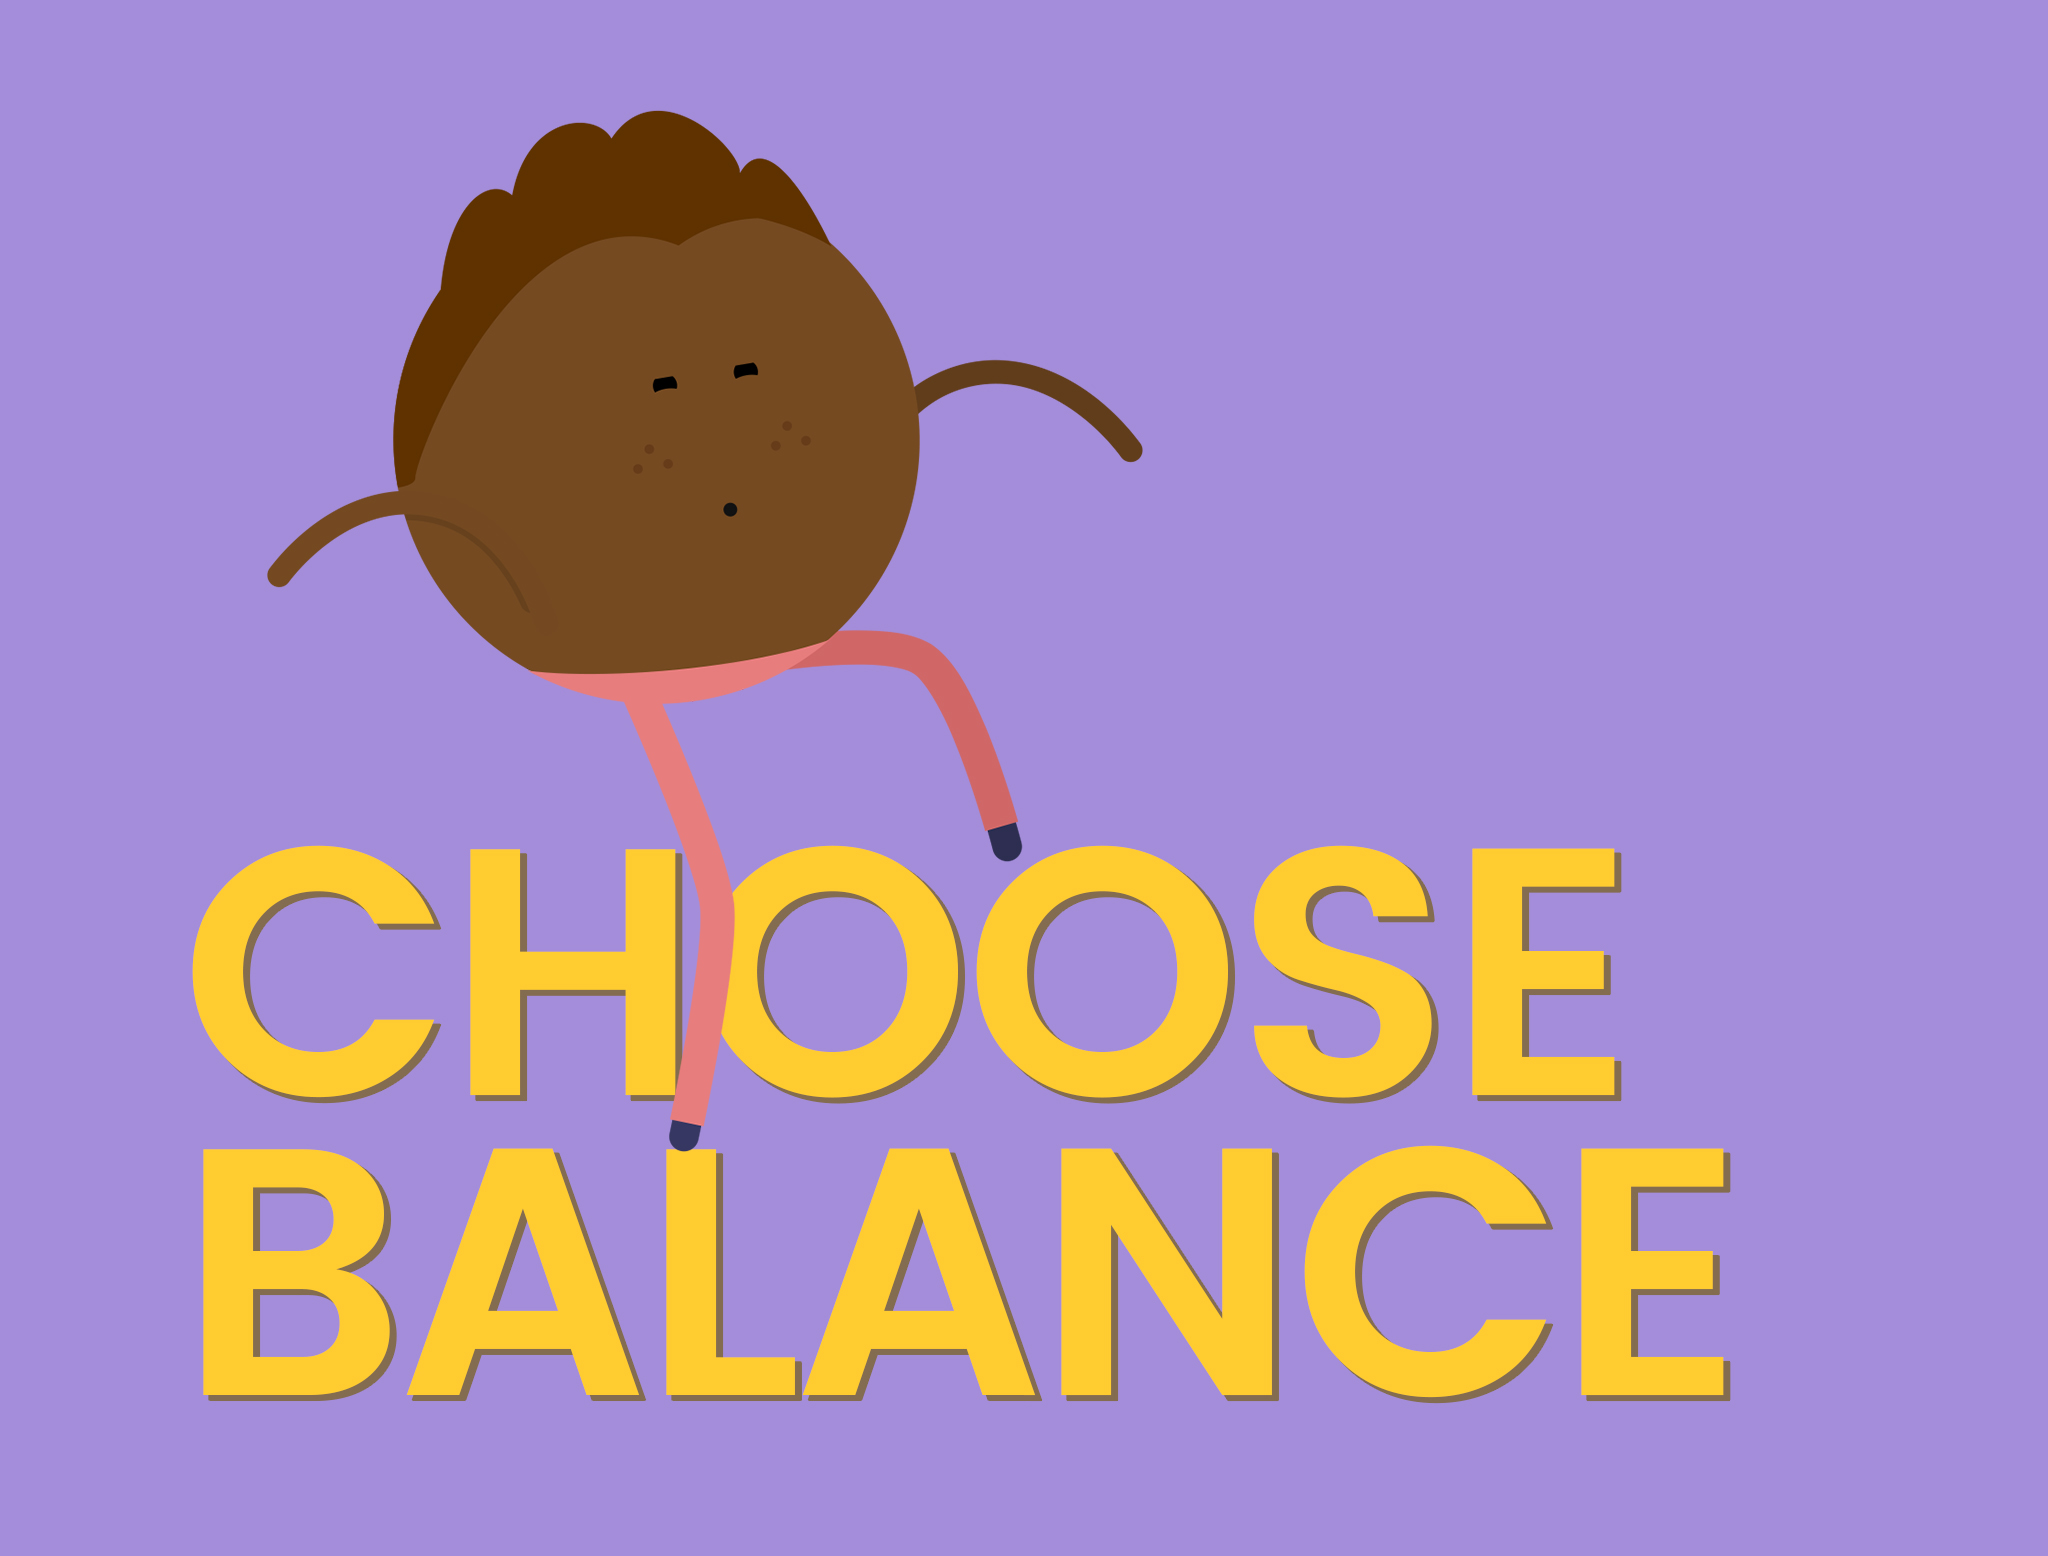 Words Choose Balance Cartoon character balancing on the words